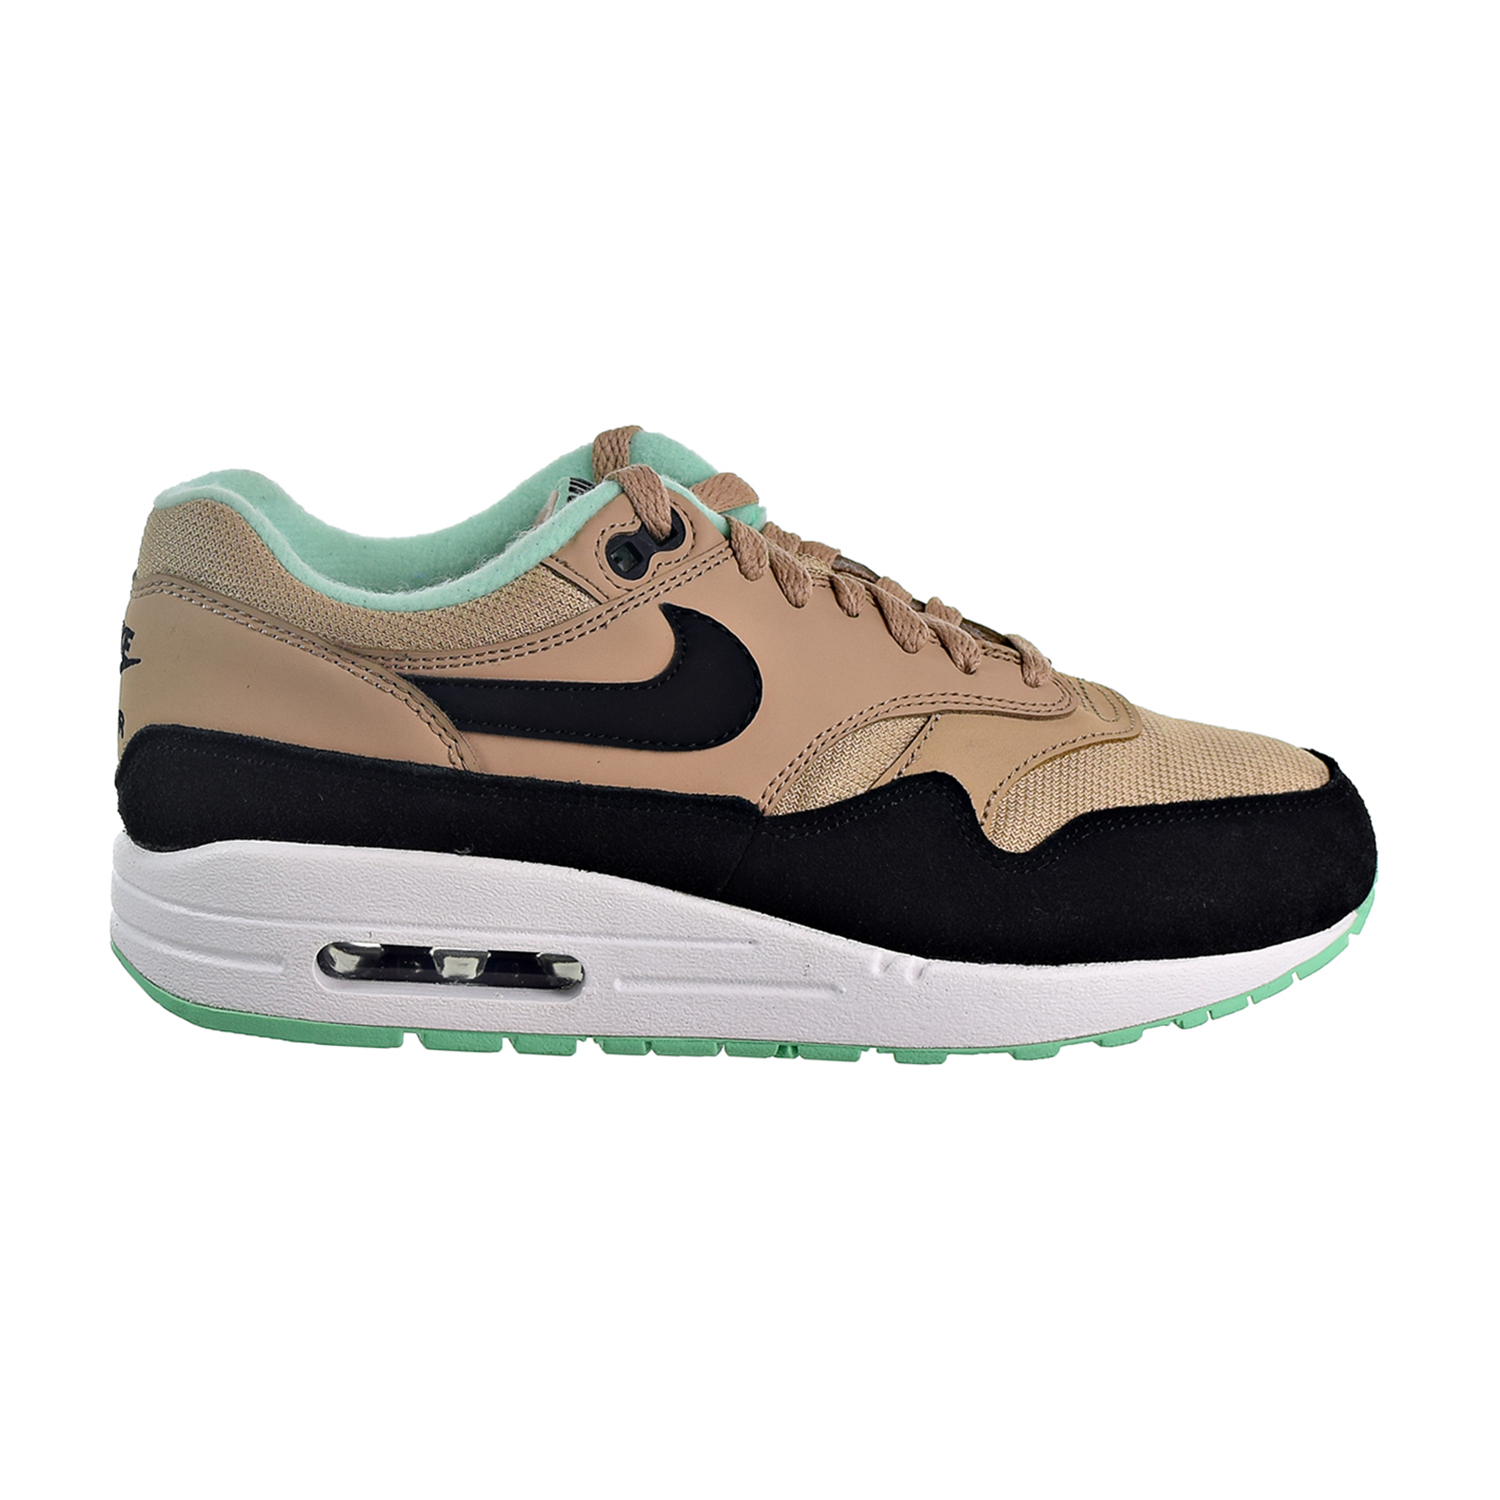 Desertblackgreen Max About Air Women's Shoes Glowwhite Nike Details 206 1 319986 dCxsrthQB